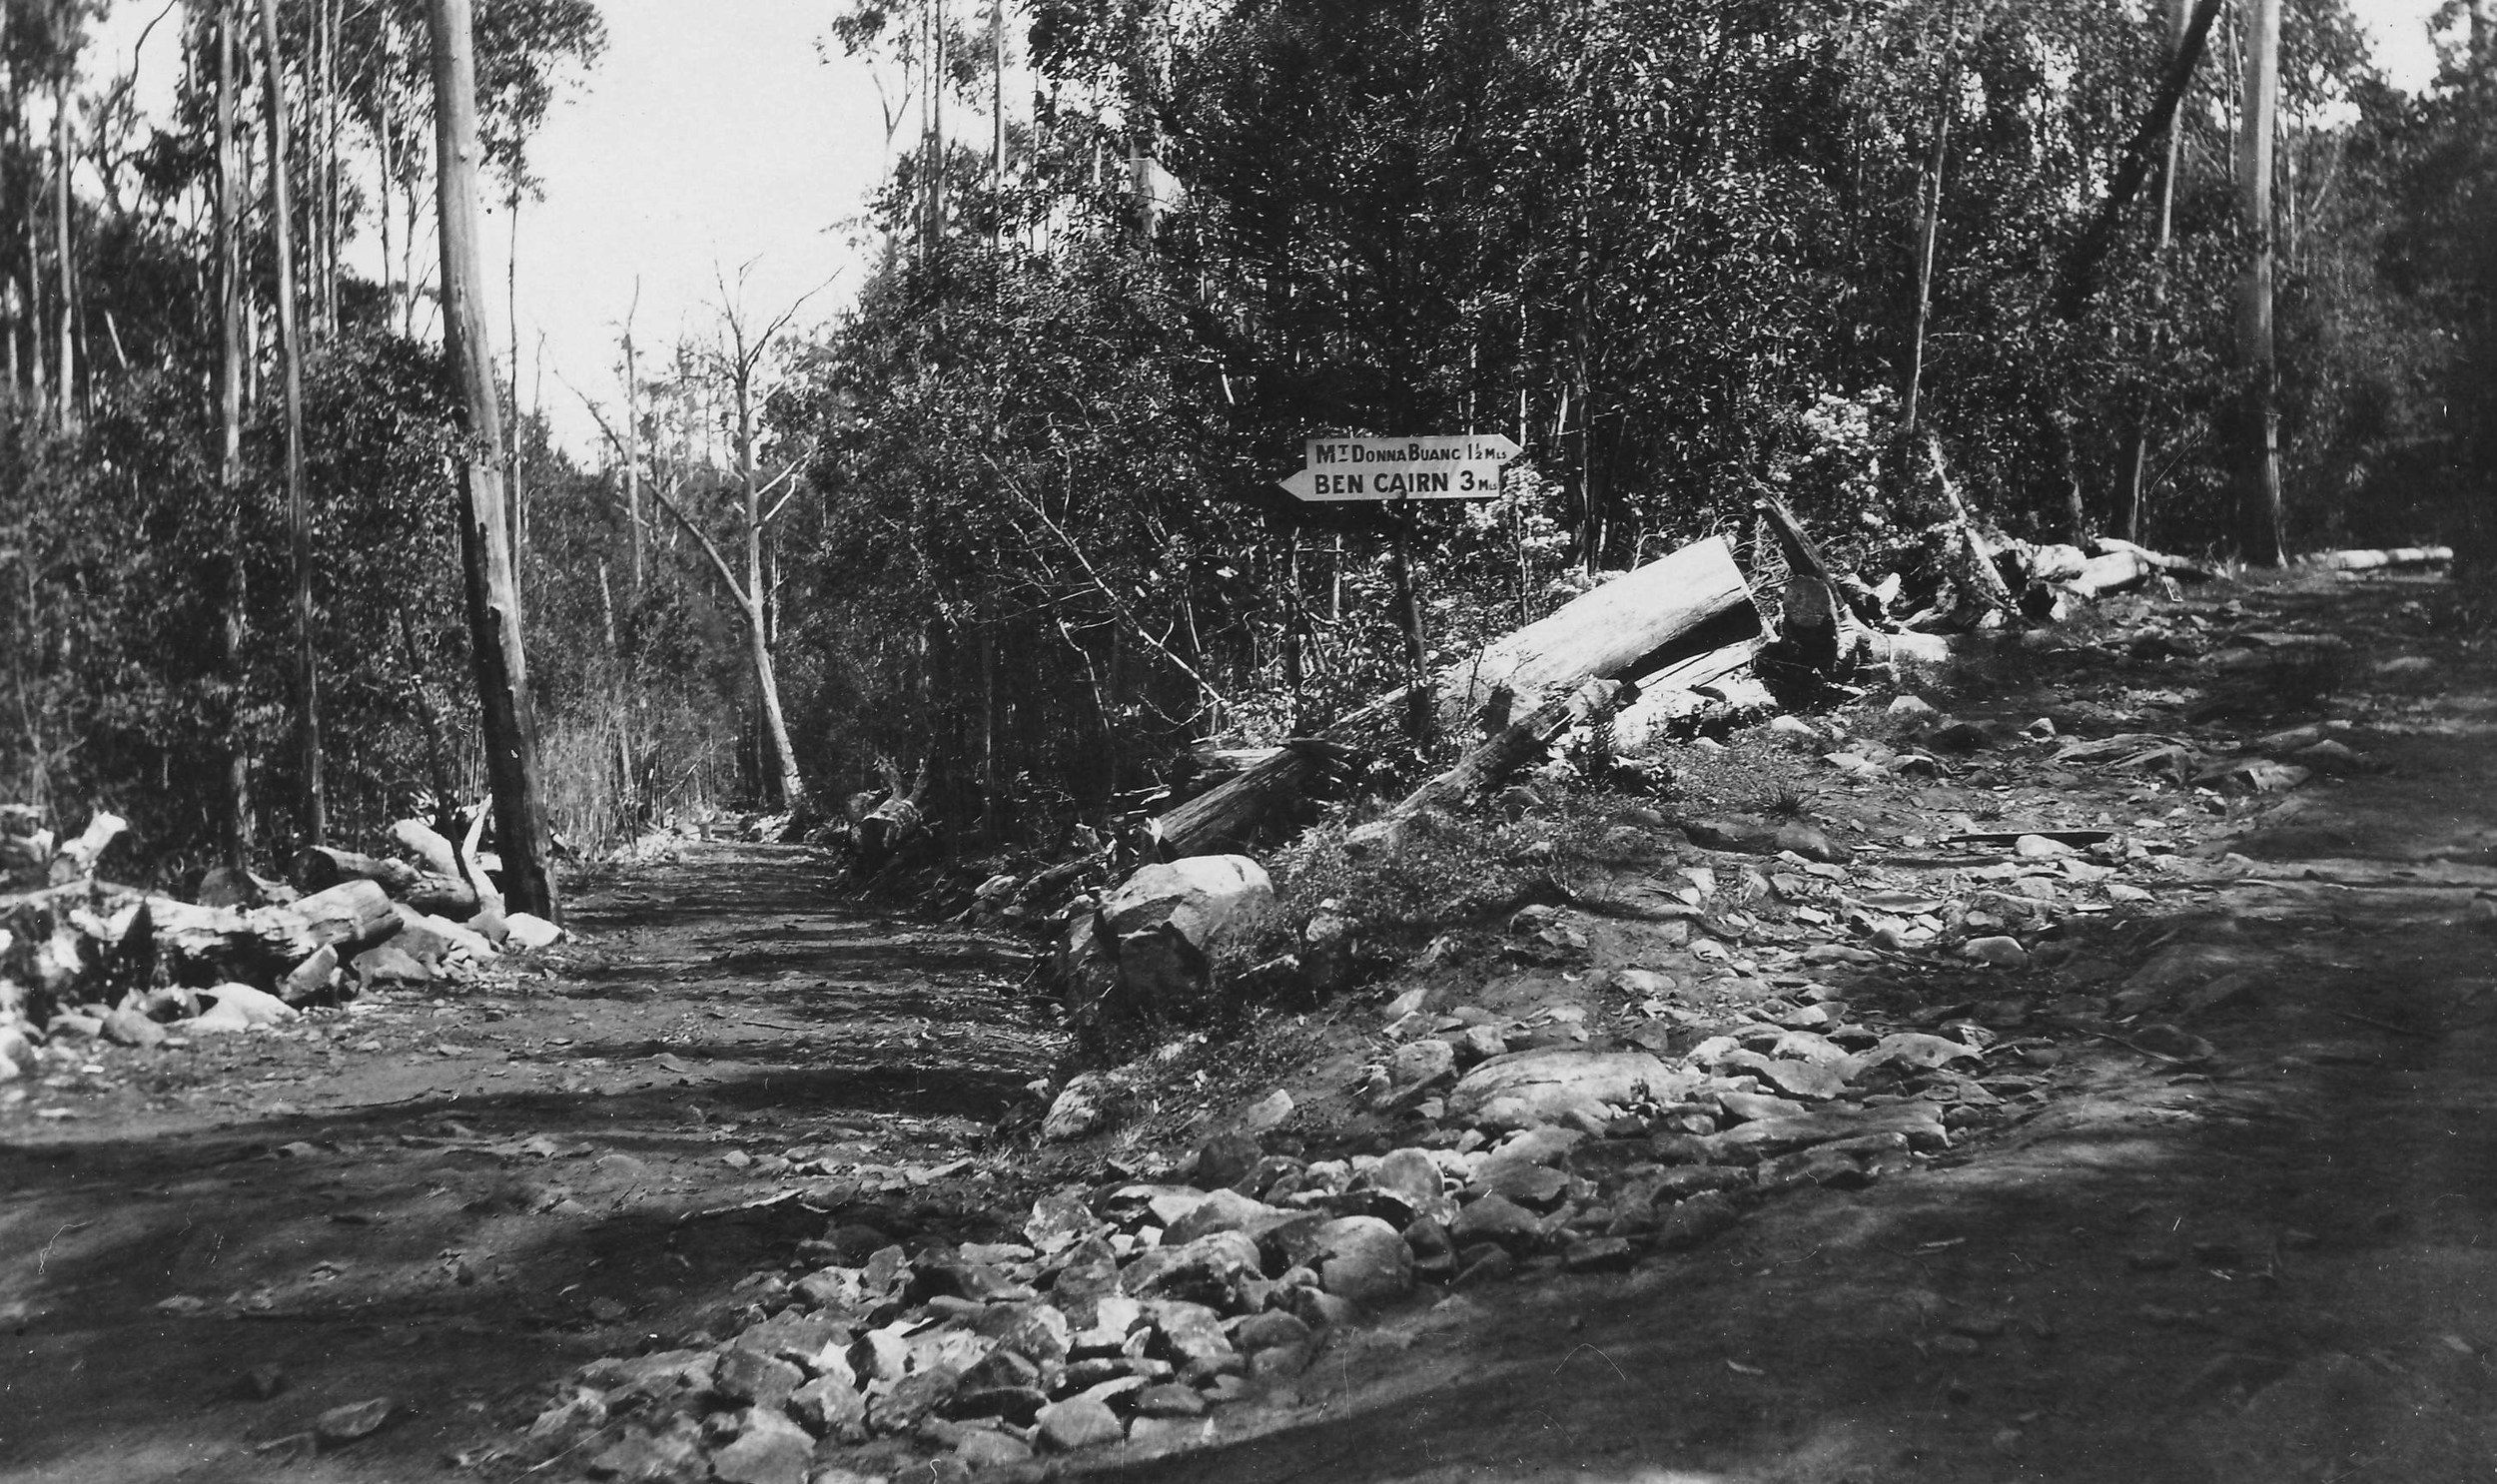 The Donna Buang summit - Ben Cairn road junction in the 1926.